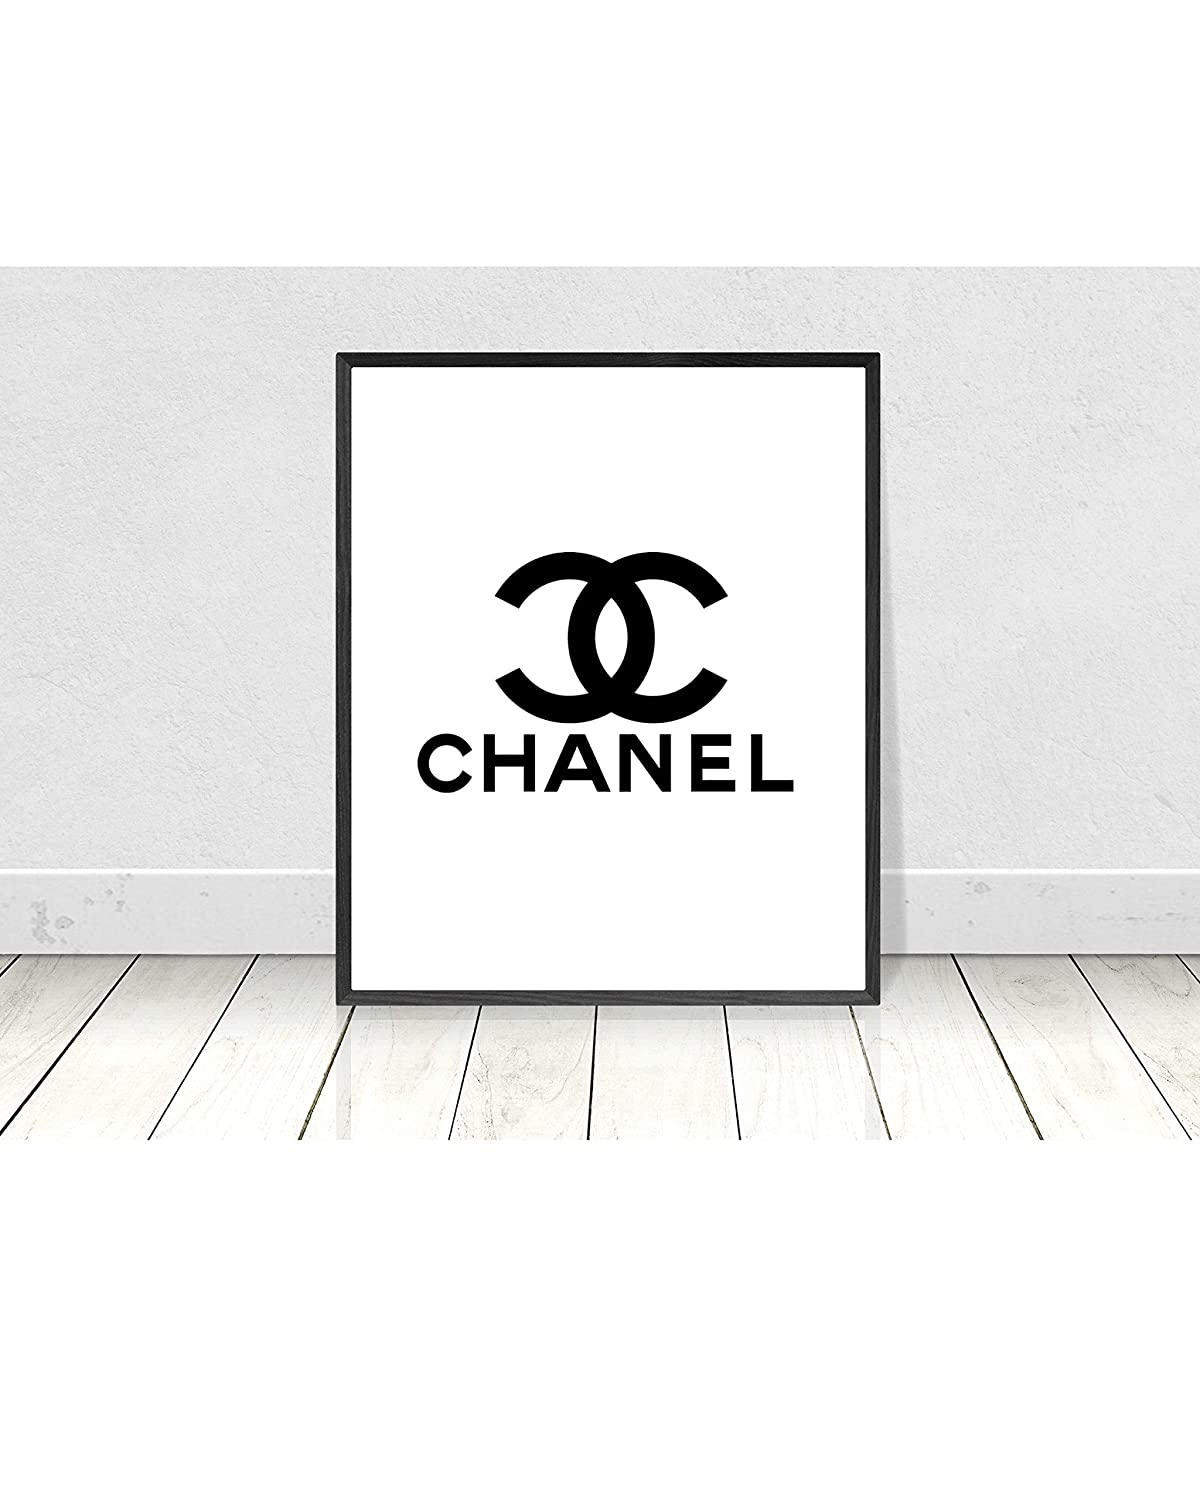 photograph about Chanel Printable called : King65irginia Chanel Print Chanel Poster Chanel